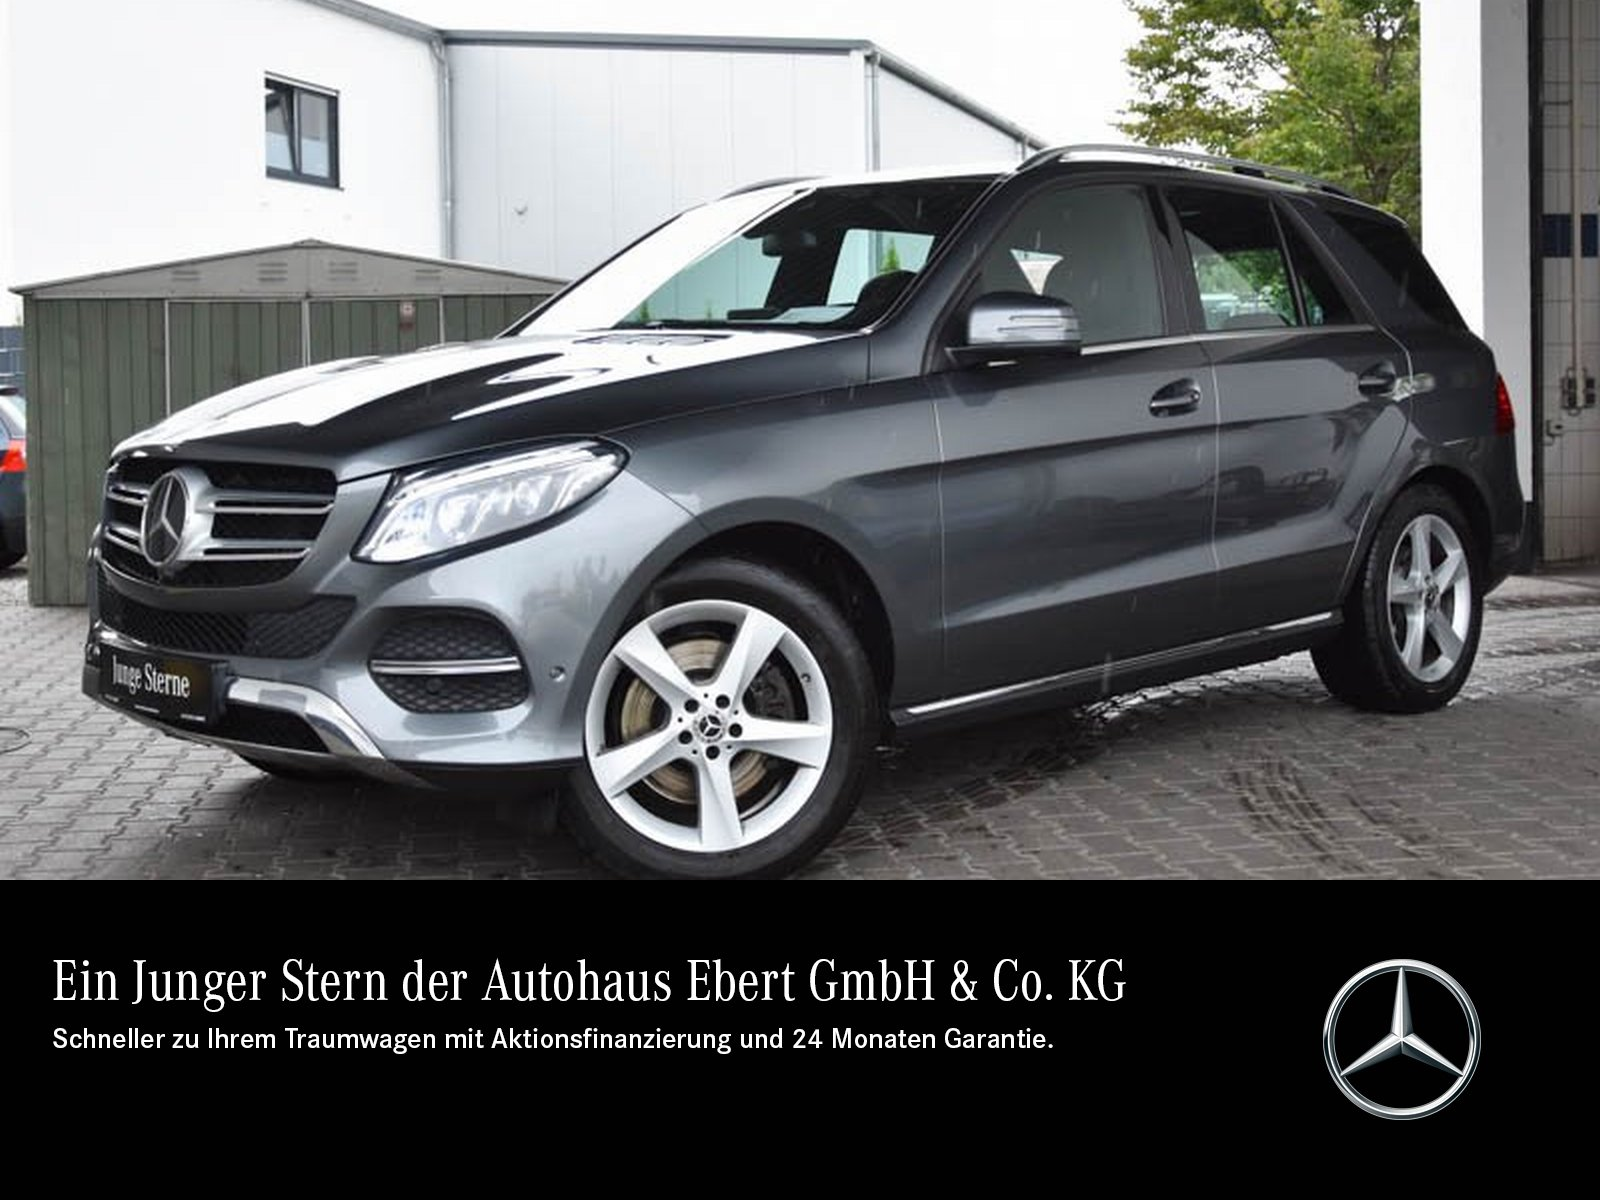 Mercedes-Benz GLE 400 4M 9G+COMMAND+LED+STHZG+360°+AIRMATIC, Jahr 2017, Benzin